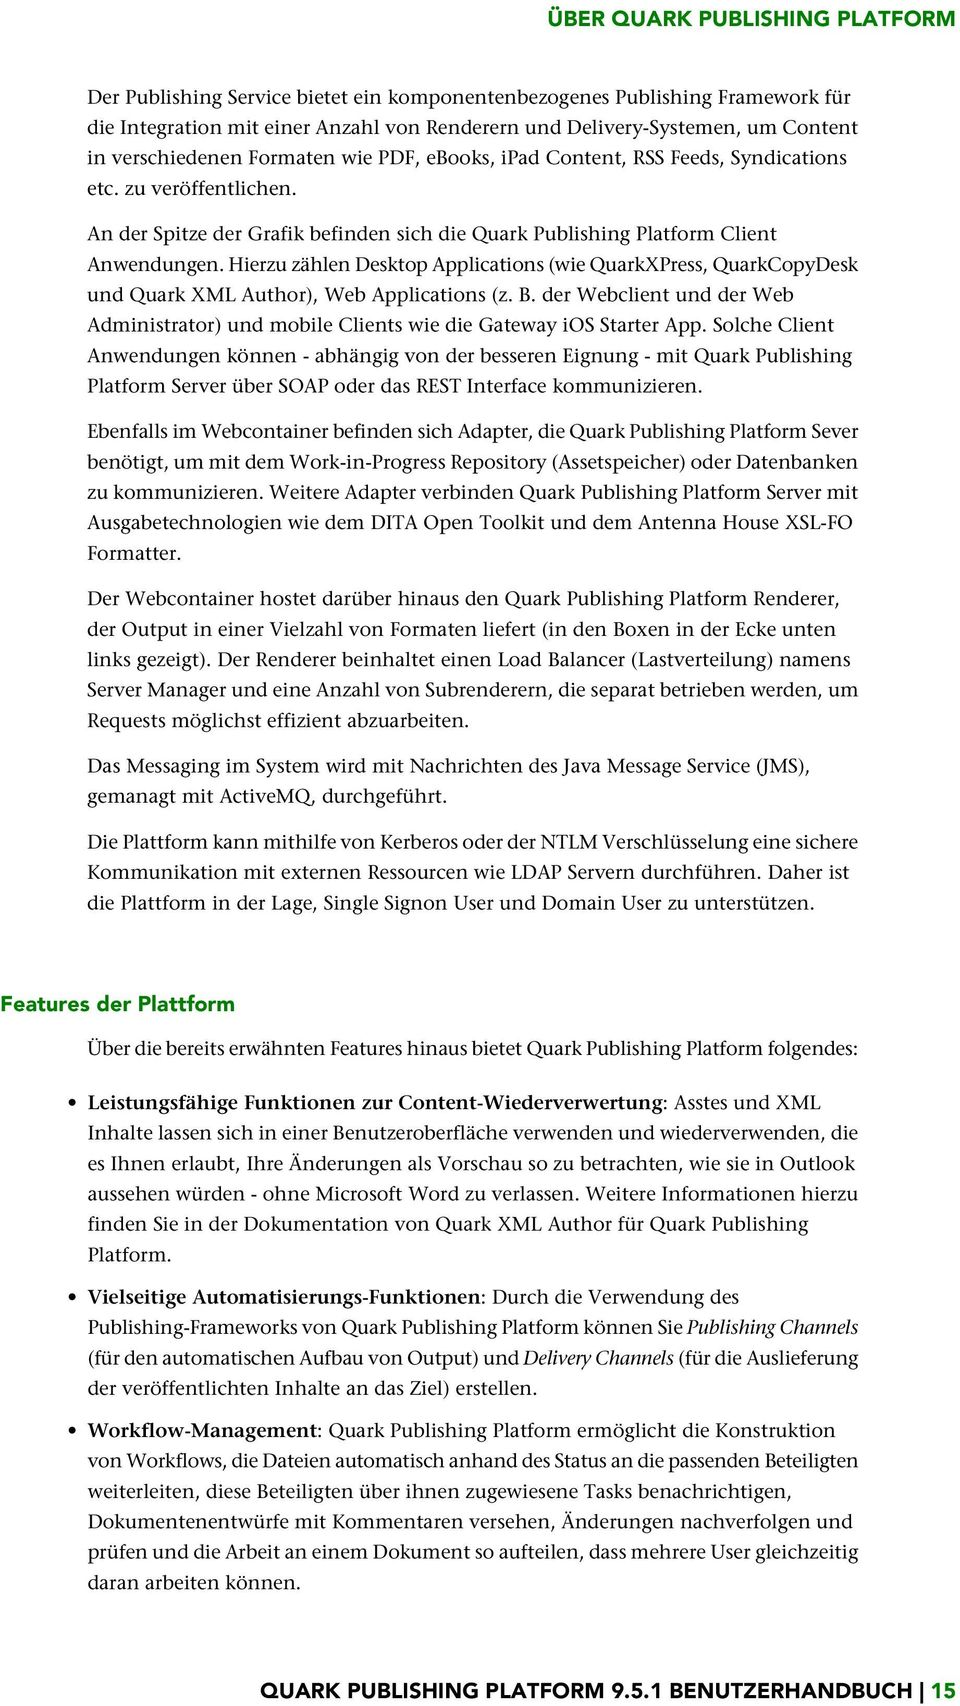 Hierzu zählen Desktop Applications (wie QuarkXPress, QuarkCopyDesk und Quark XML Author), Web Applications (z. B.